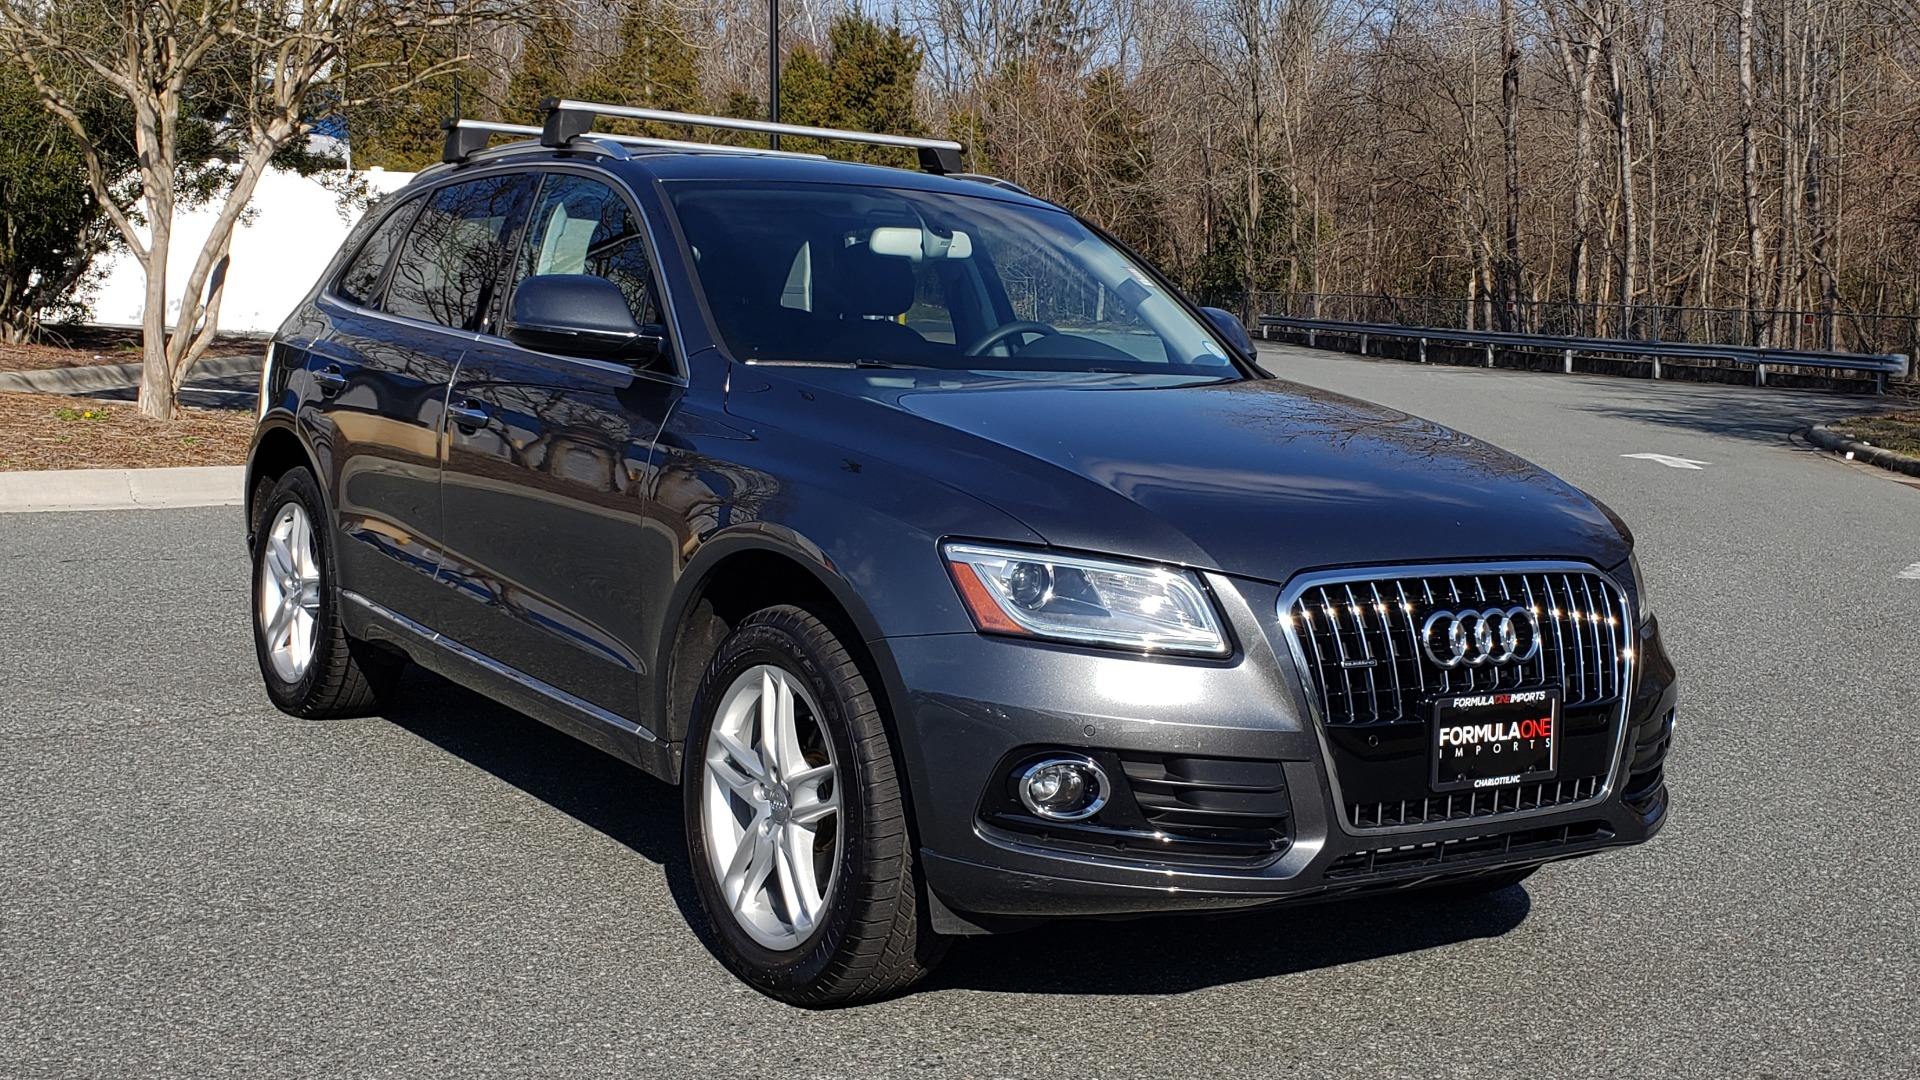 Used 2017 Audi Q5 PREMIUM PLUS / TECH / NAV / PANO / REARVIEW / B&O SND for sale Sold at Formula Imports in Charlotte NC 28227 4